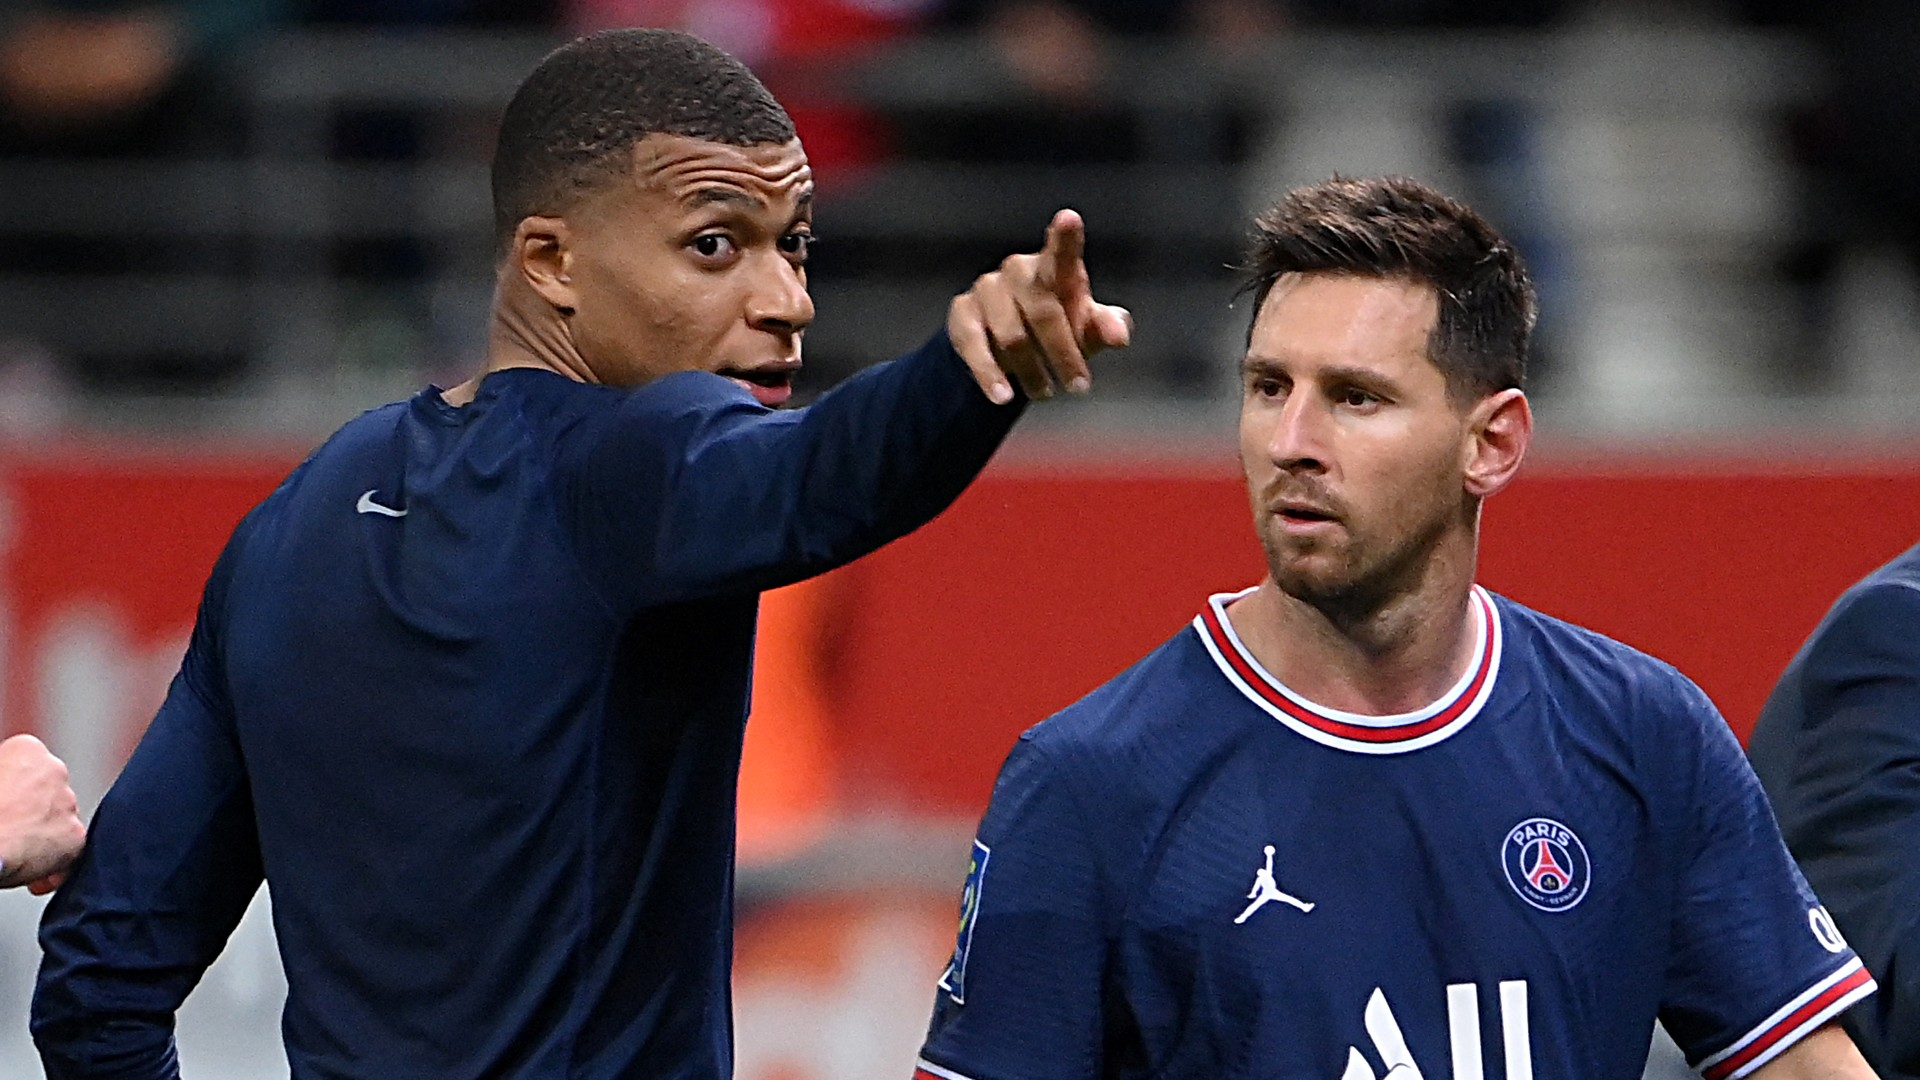 'Messi has to serve Mbappe' - PSG's attack should be led by World Cup winner, insists Anelka